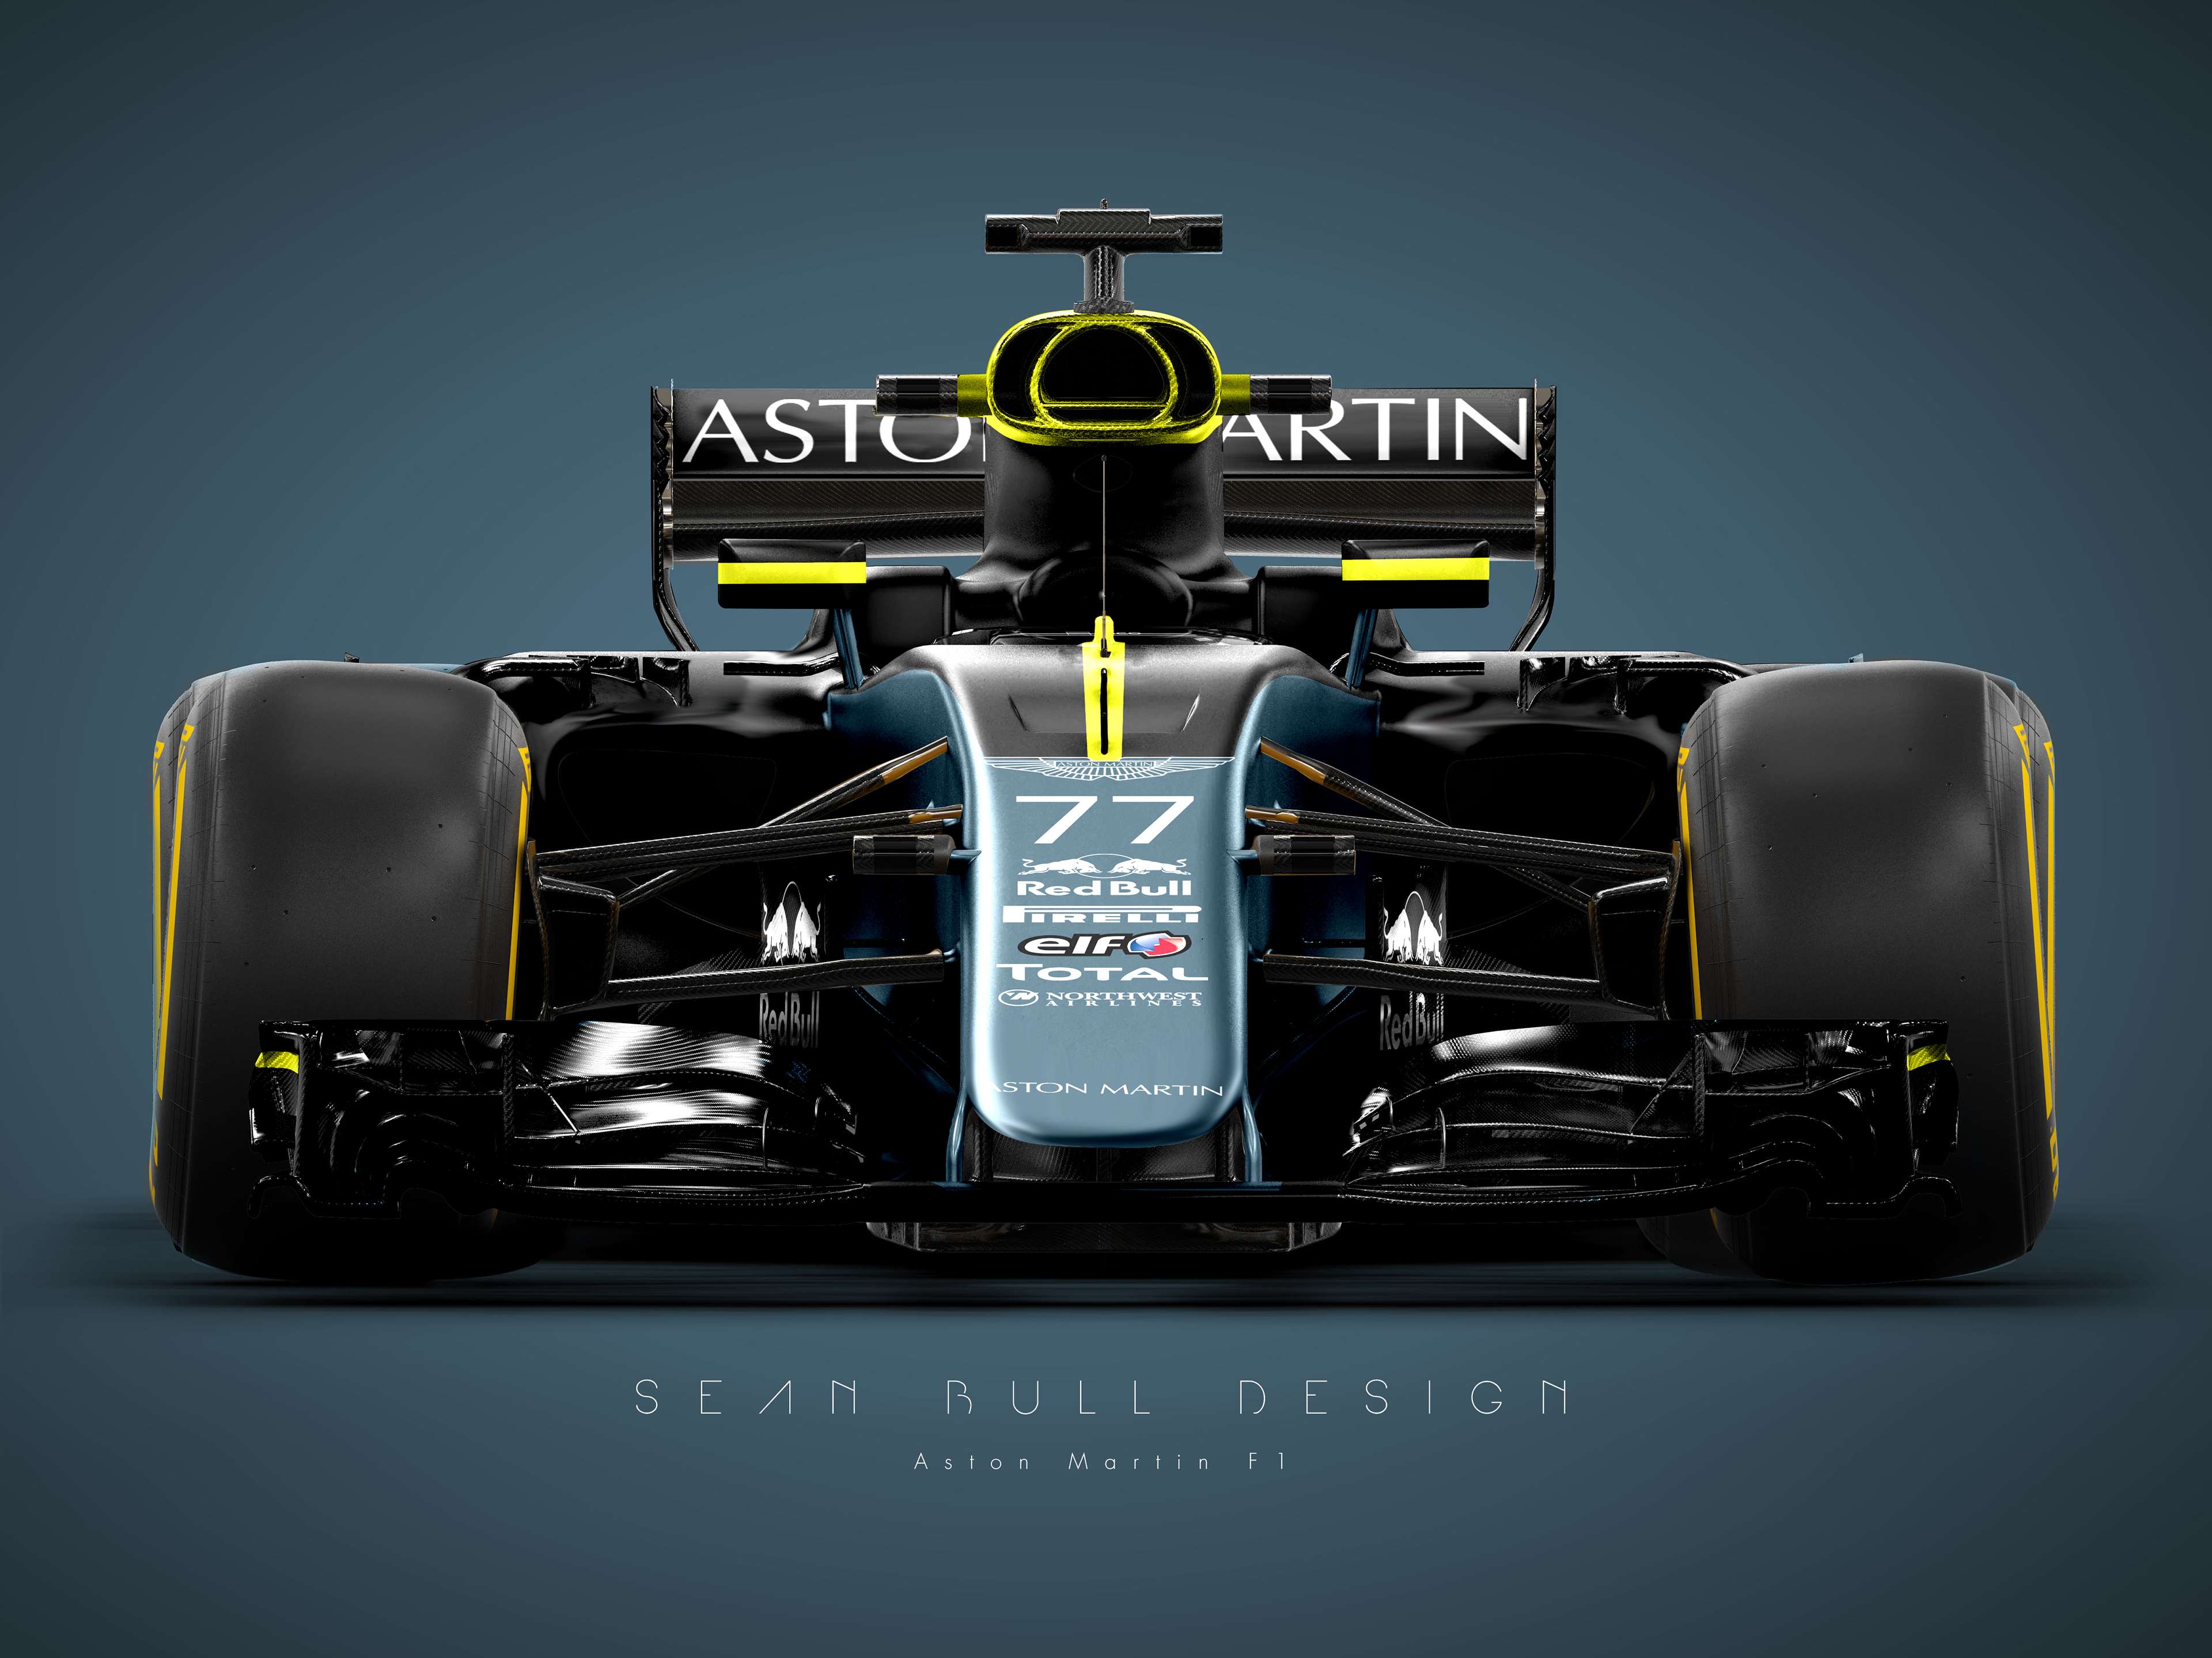 Aston Martin Racing Lovely aston Martin F1 Livery Concept On Behance